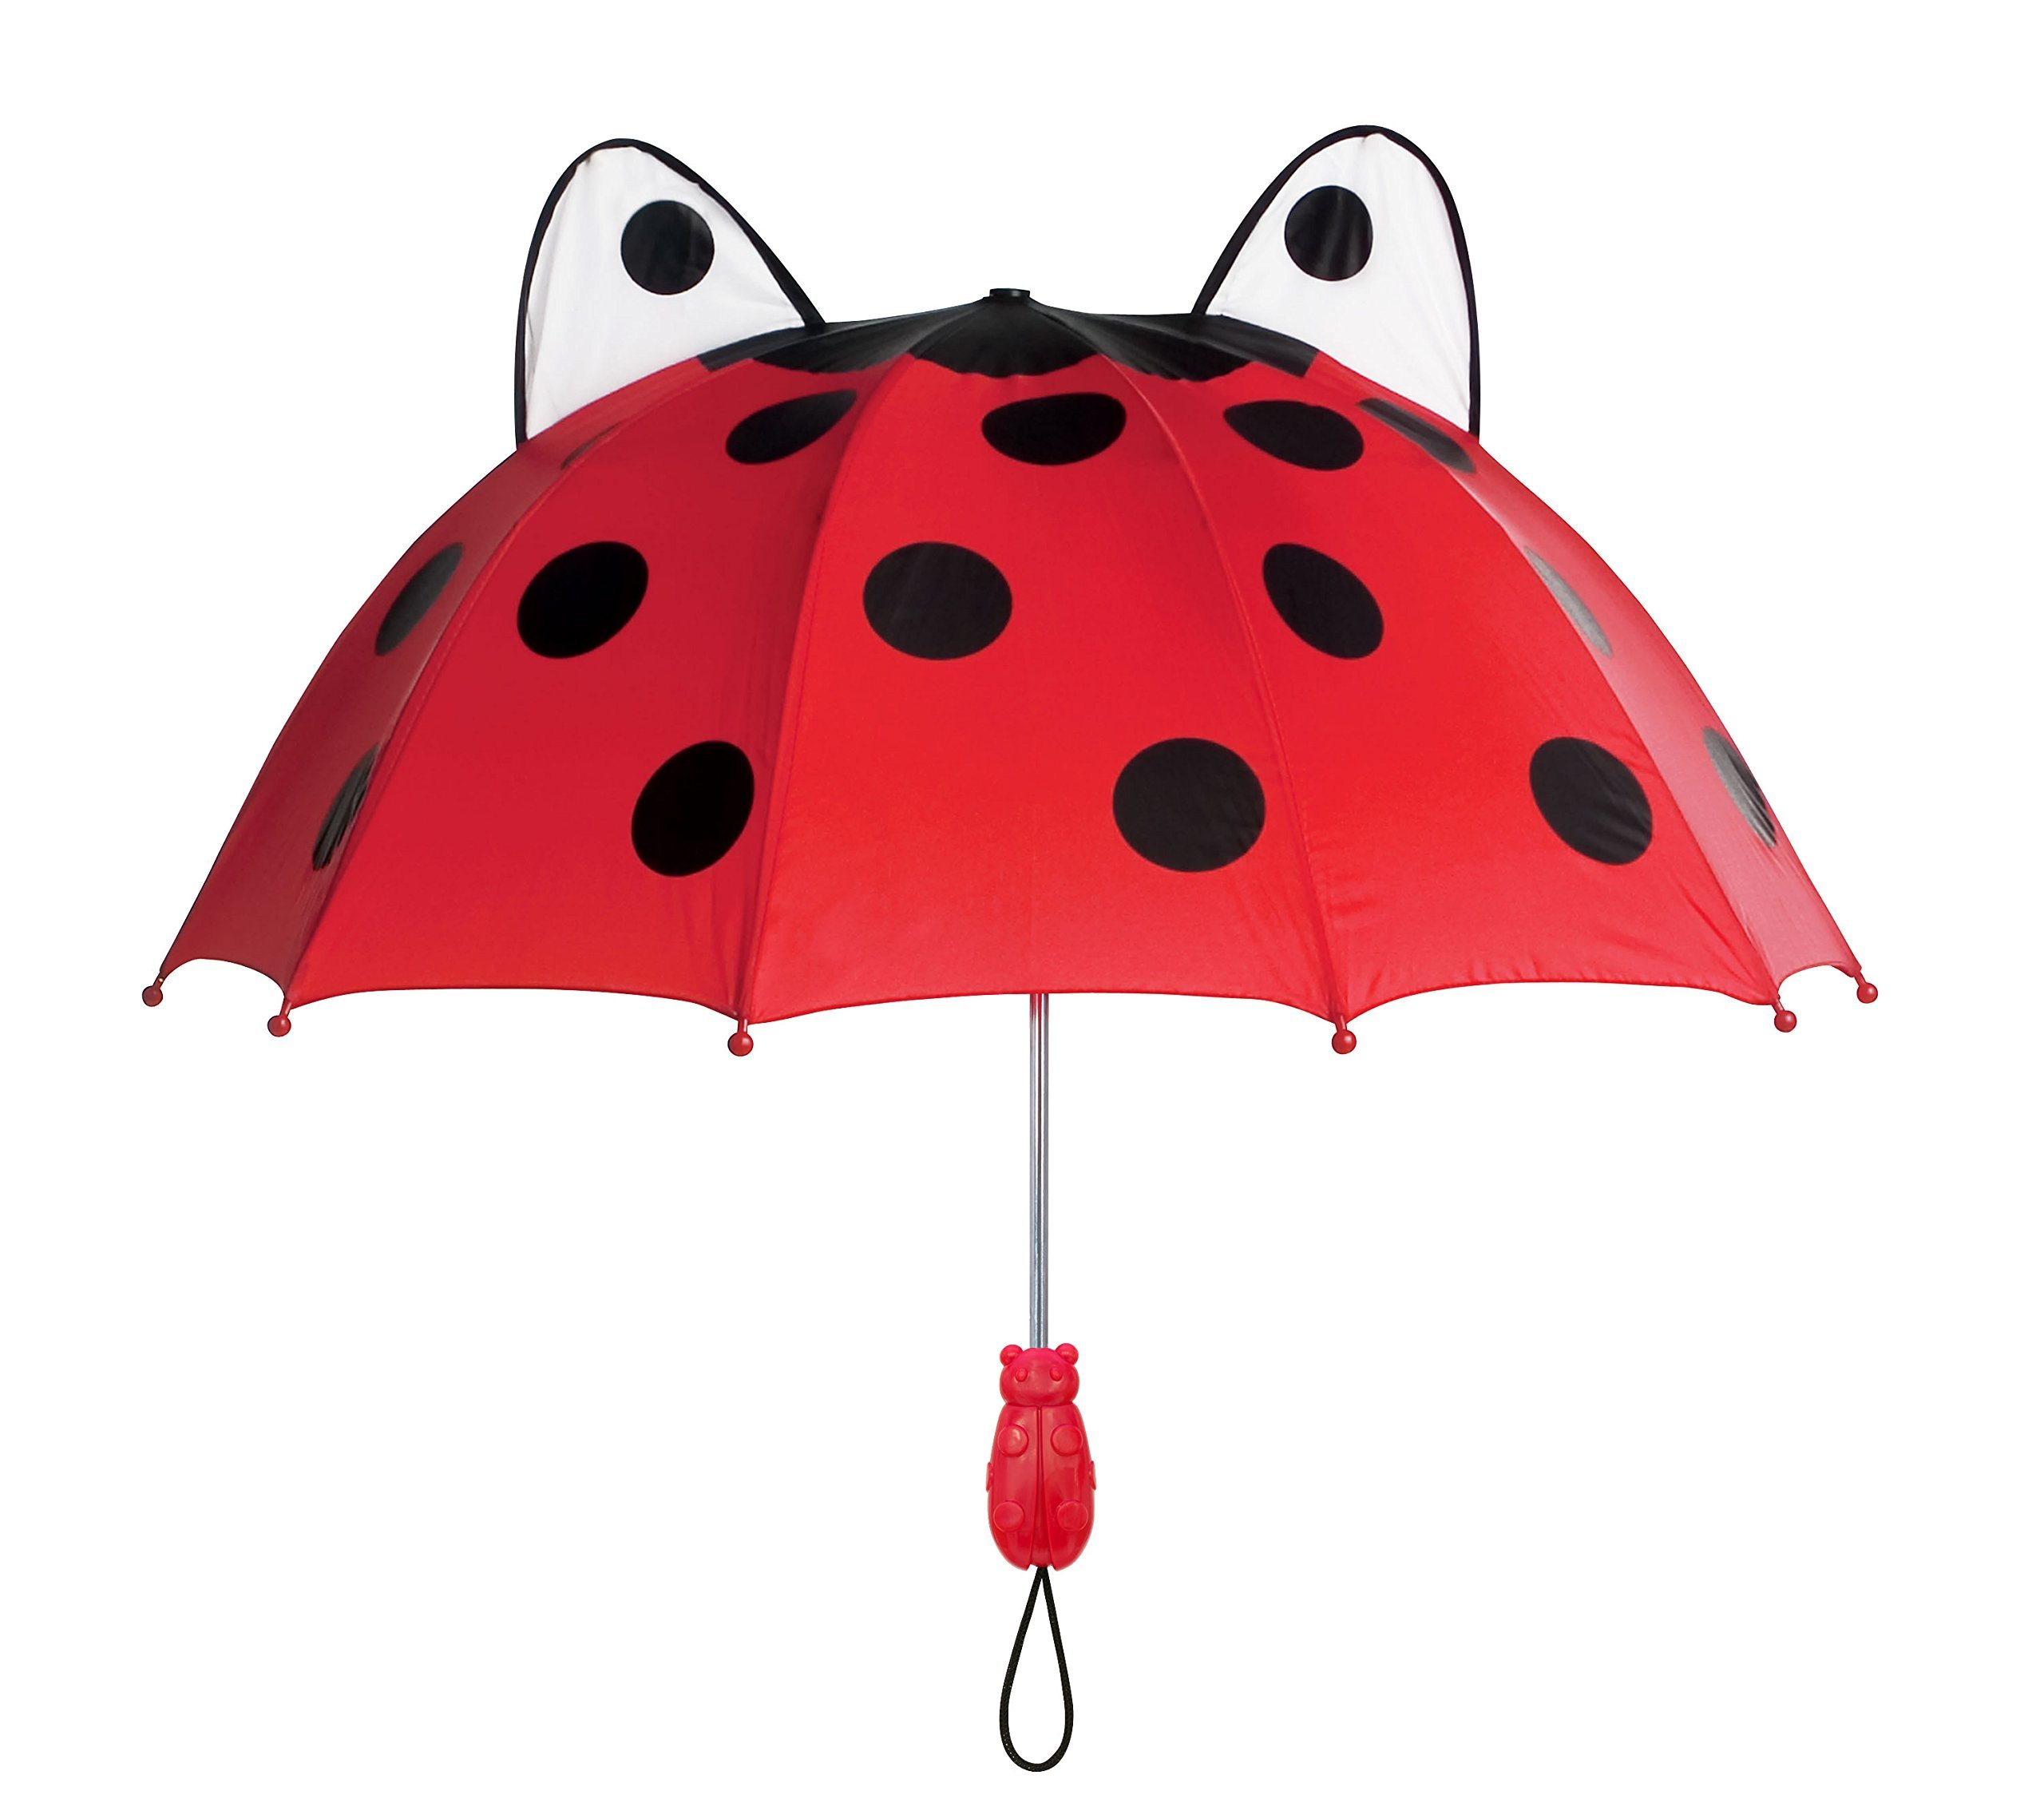 Kidorable Red Ladybug Umbrella for Girls w/Fun Ladybug Handle Pop-Out Eyes Polka Dots Kid Sized